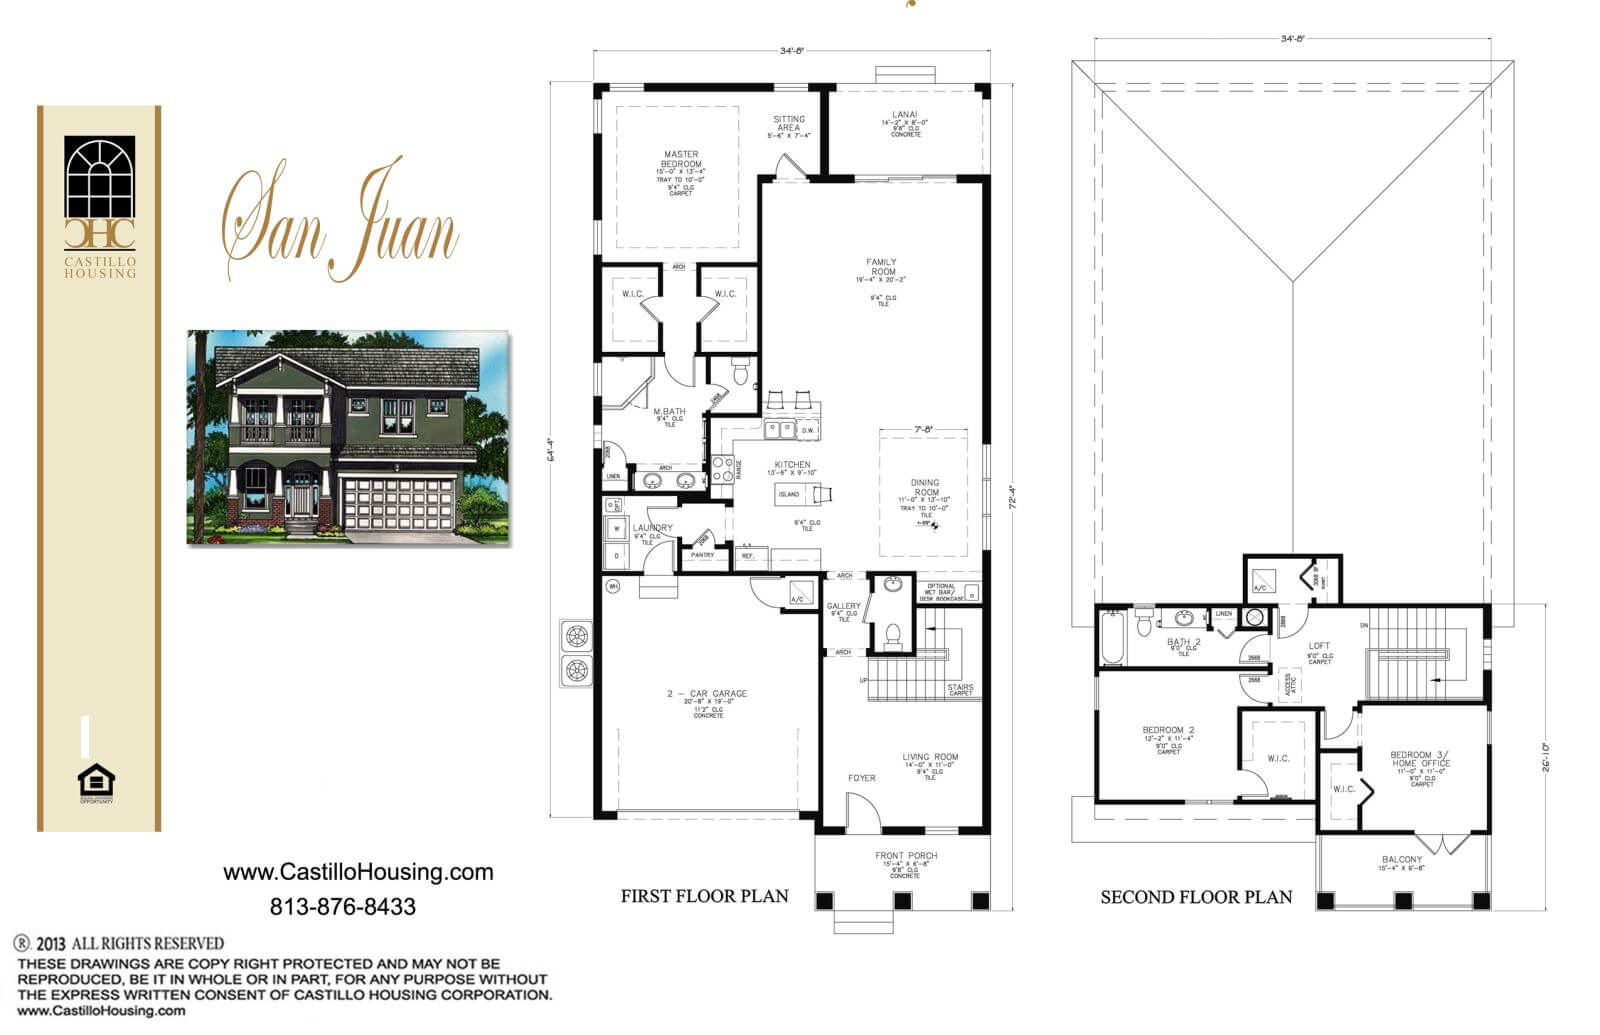 Floor Plans,2,001 SQ FT TO 2,500 SQ FT,1032